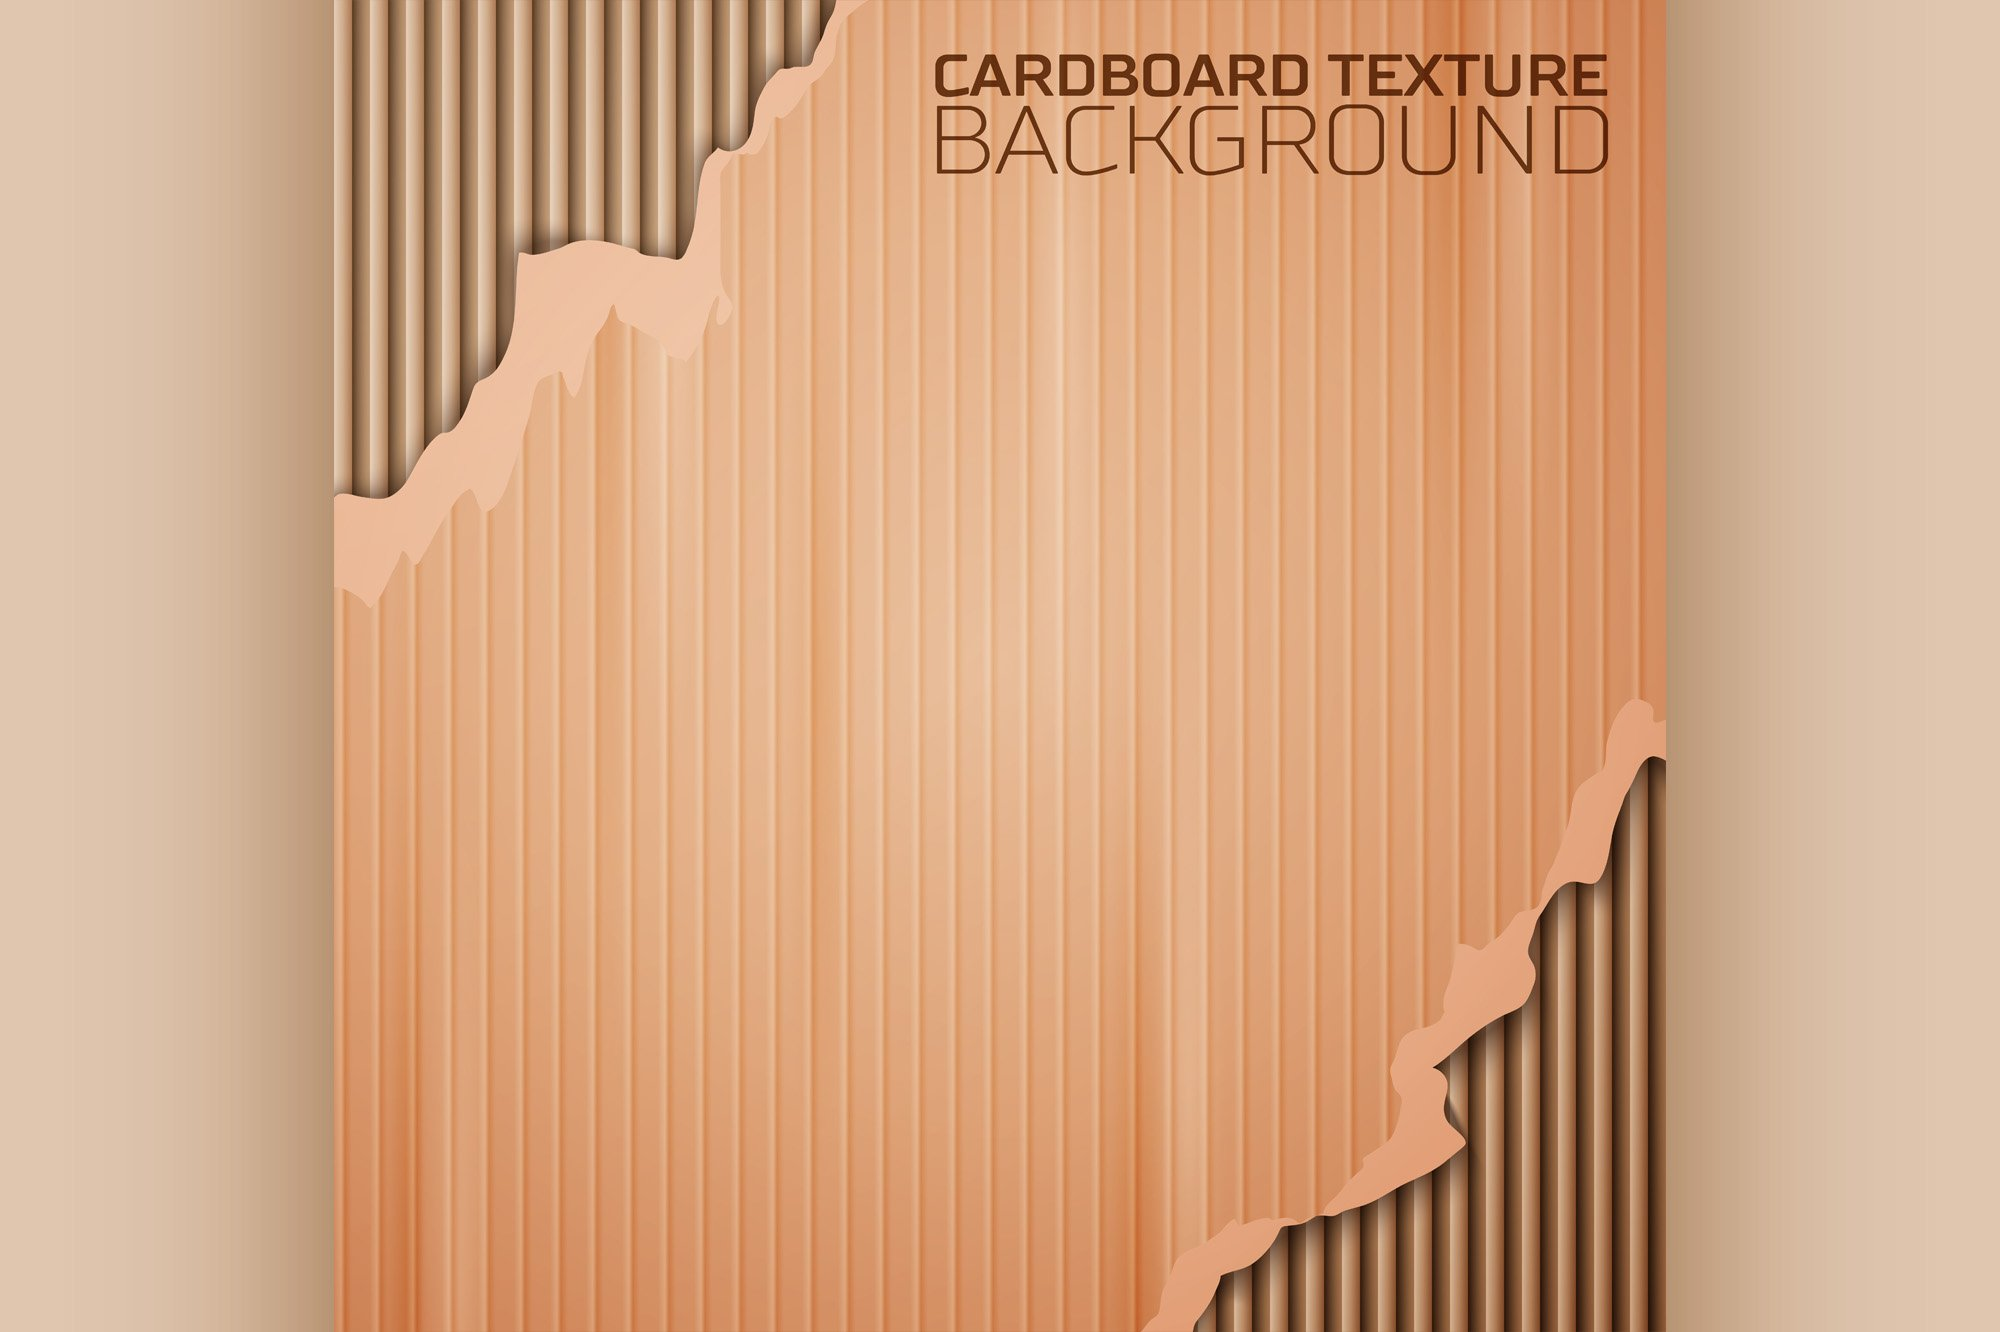 Cardboard texture background example image 1